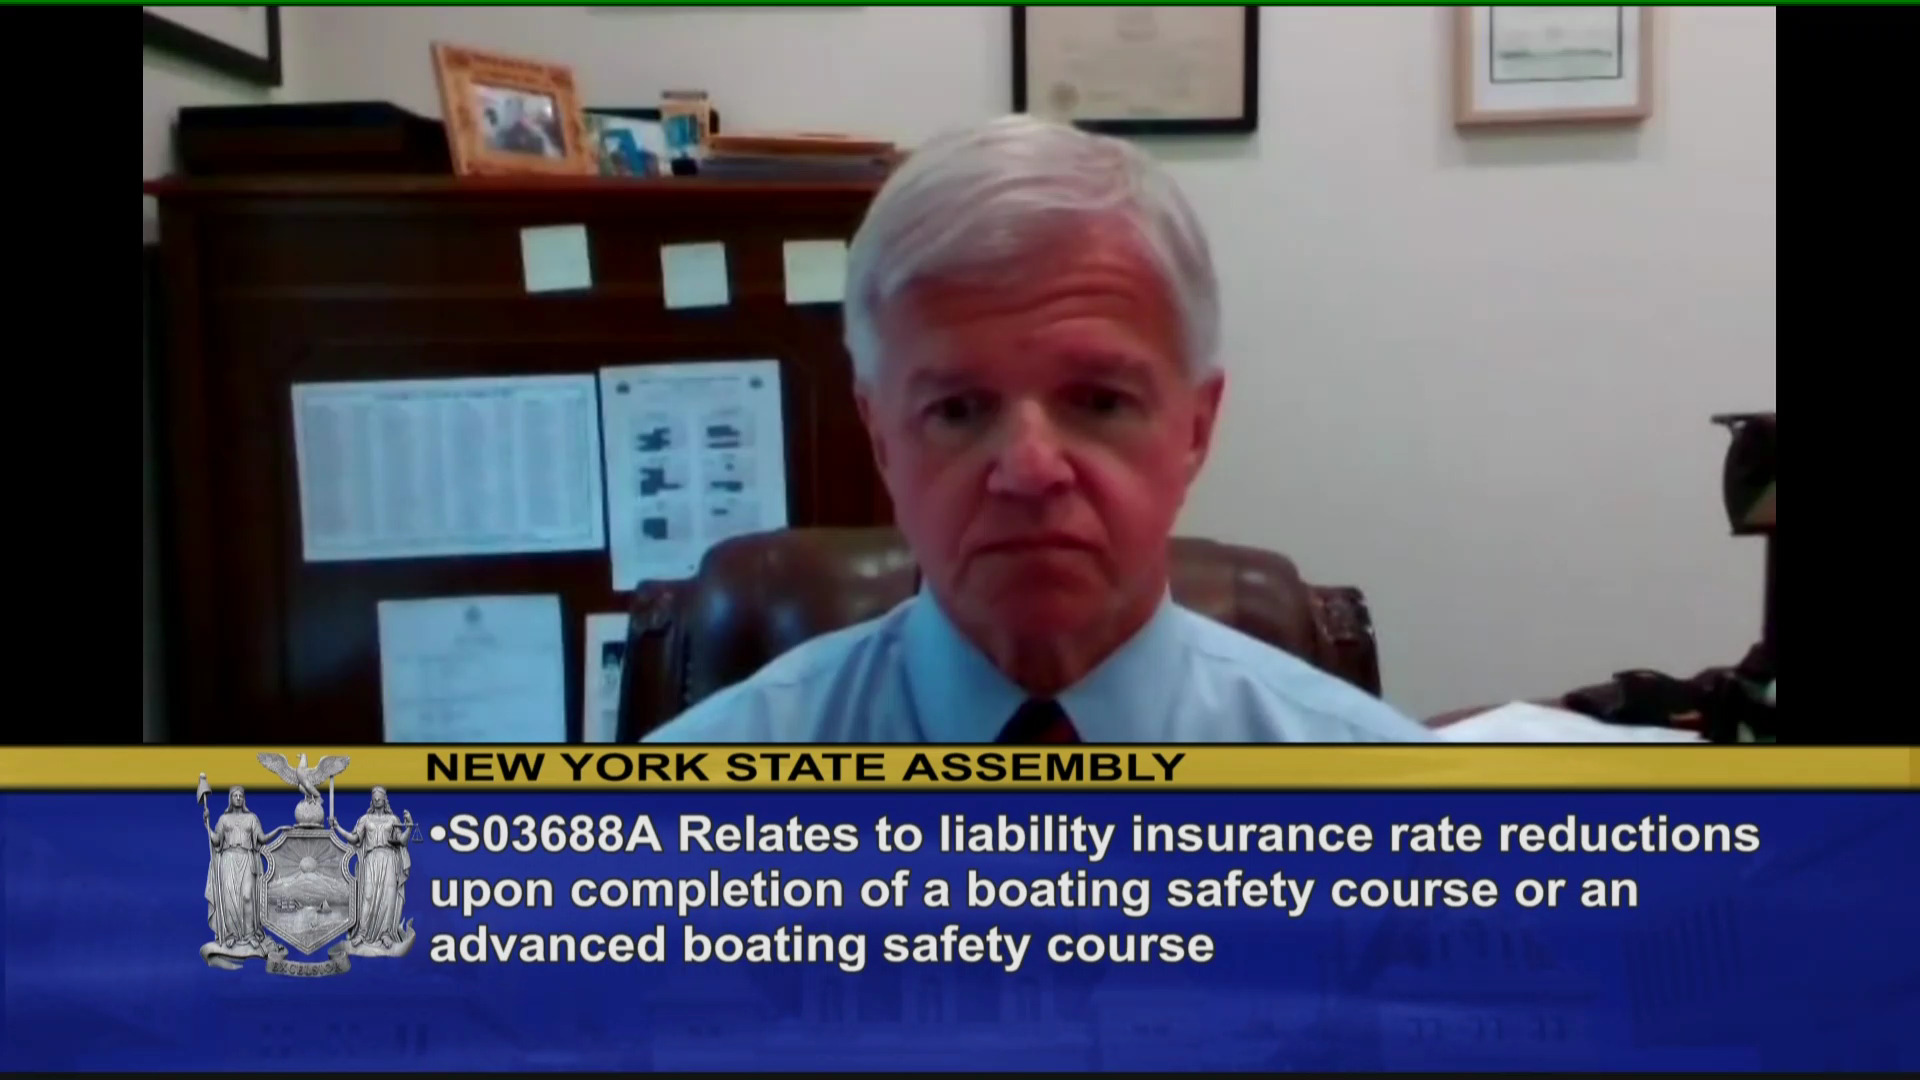 Insurance Reduction for Boating Safety Course